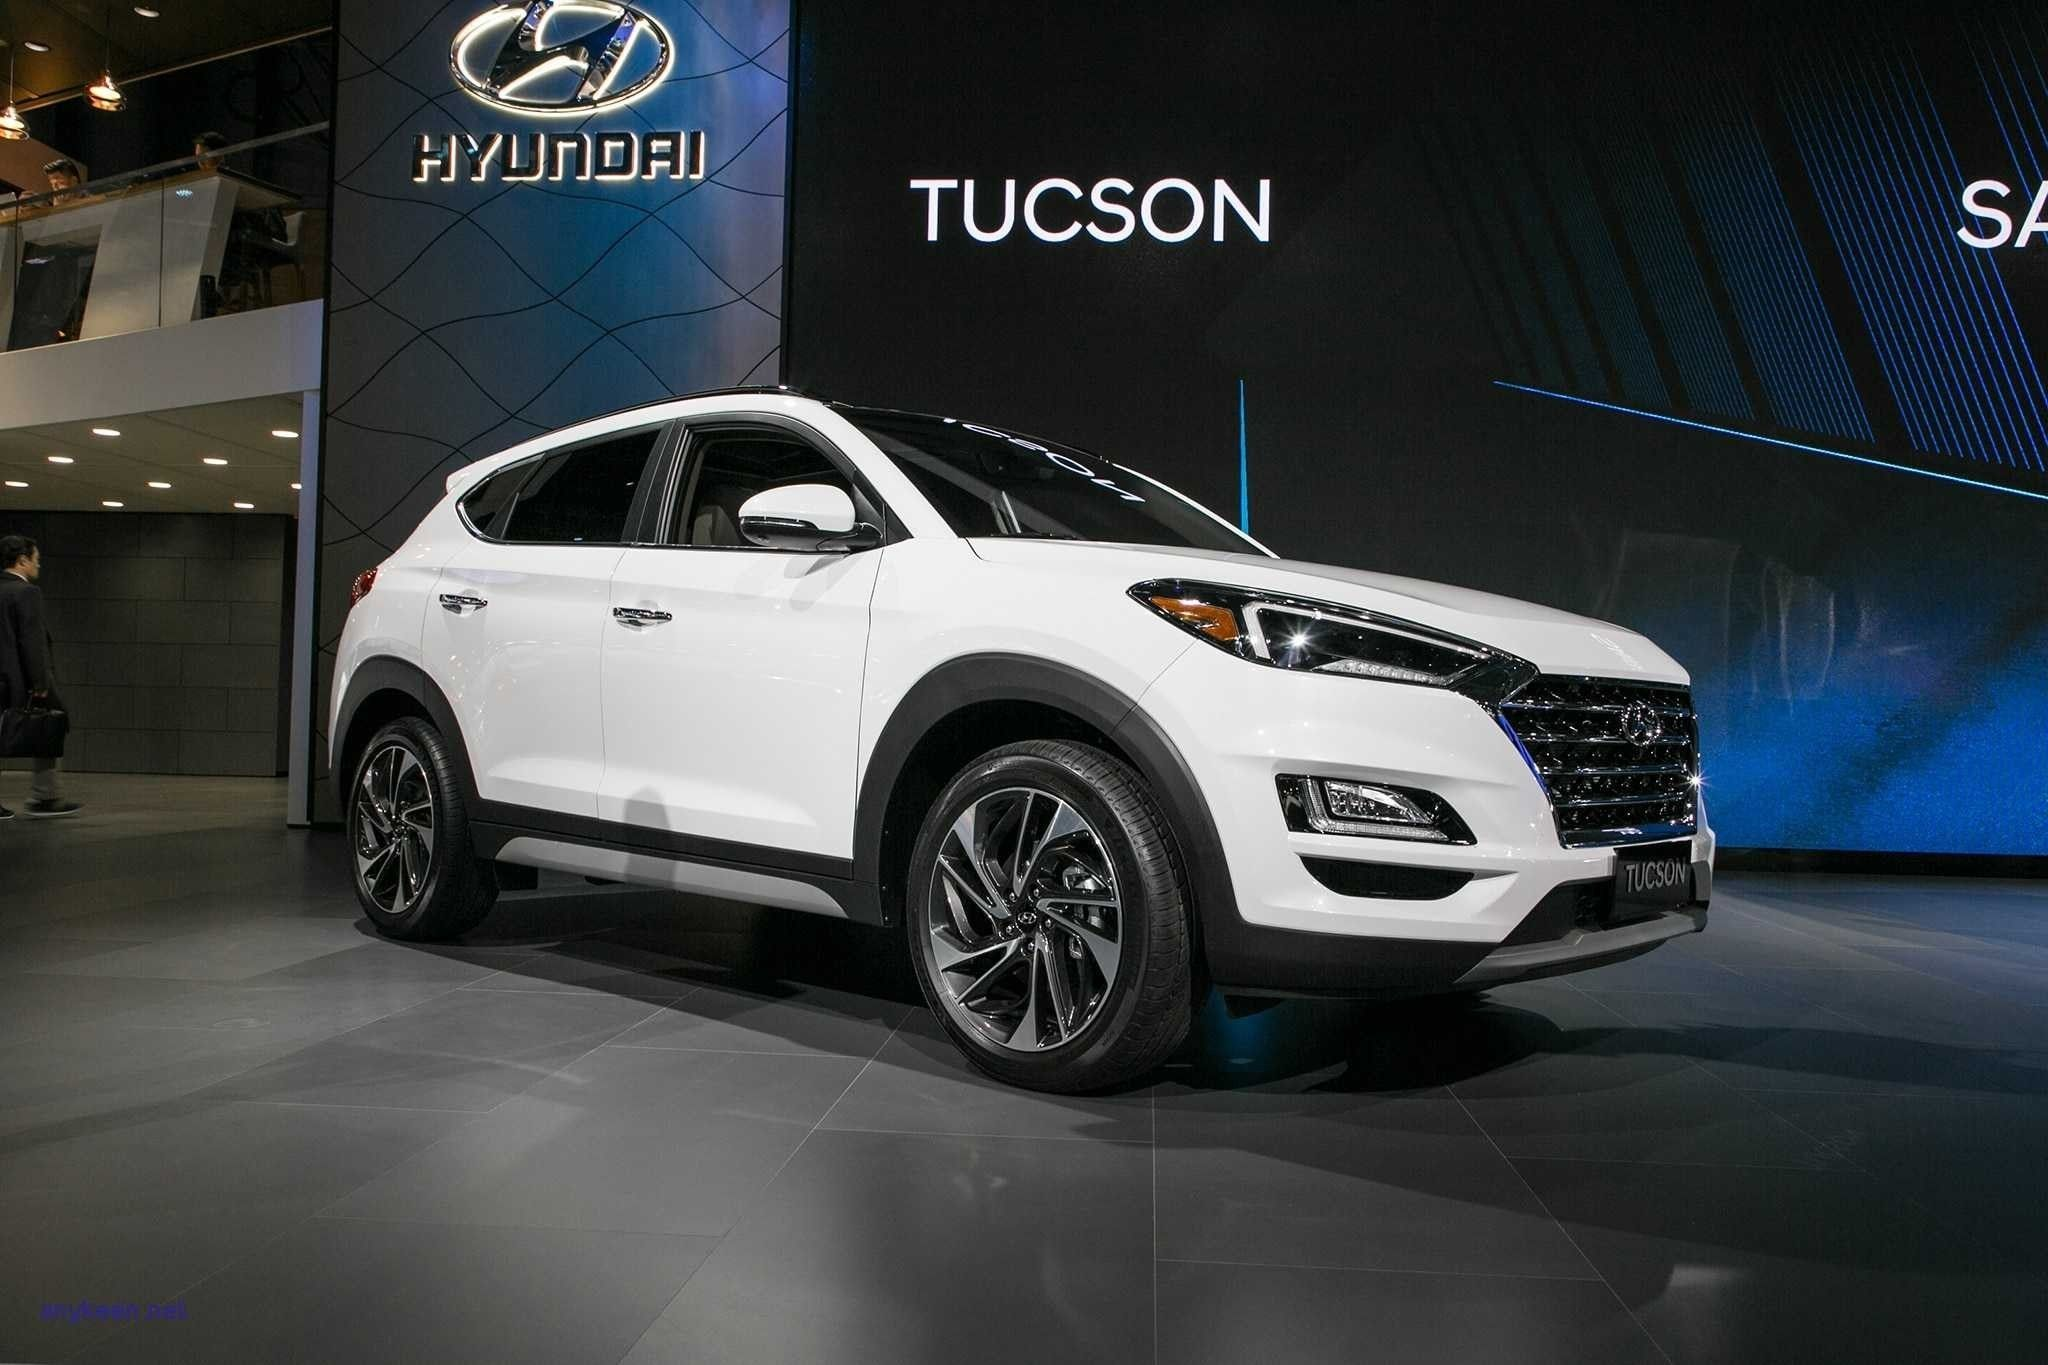 2019 Hyundai Tucson Eco Concept Redesign And Review Hyundai Tucson Hyundai Tucson